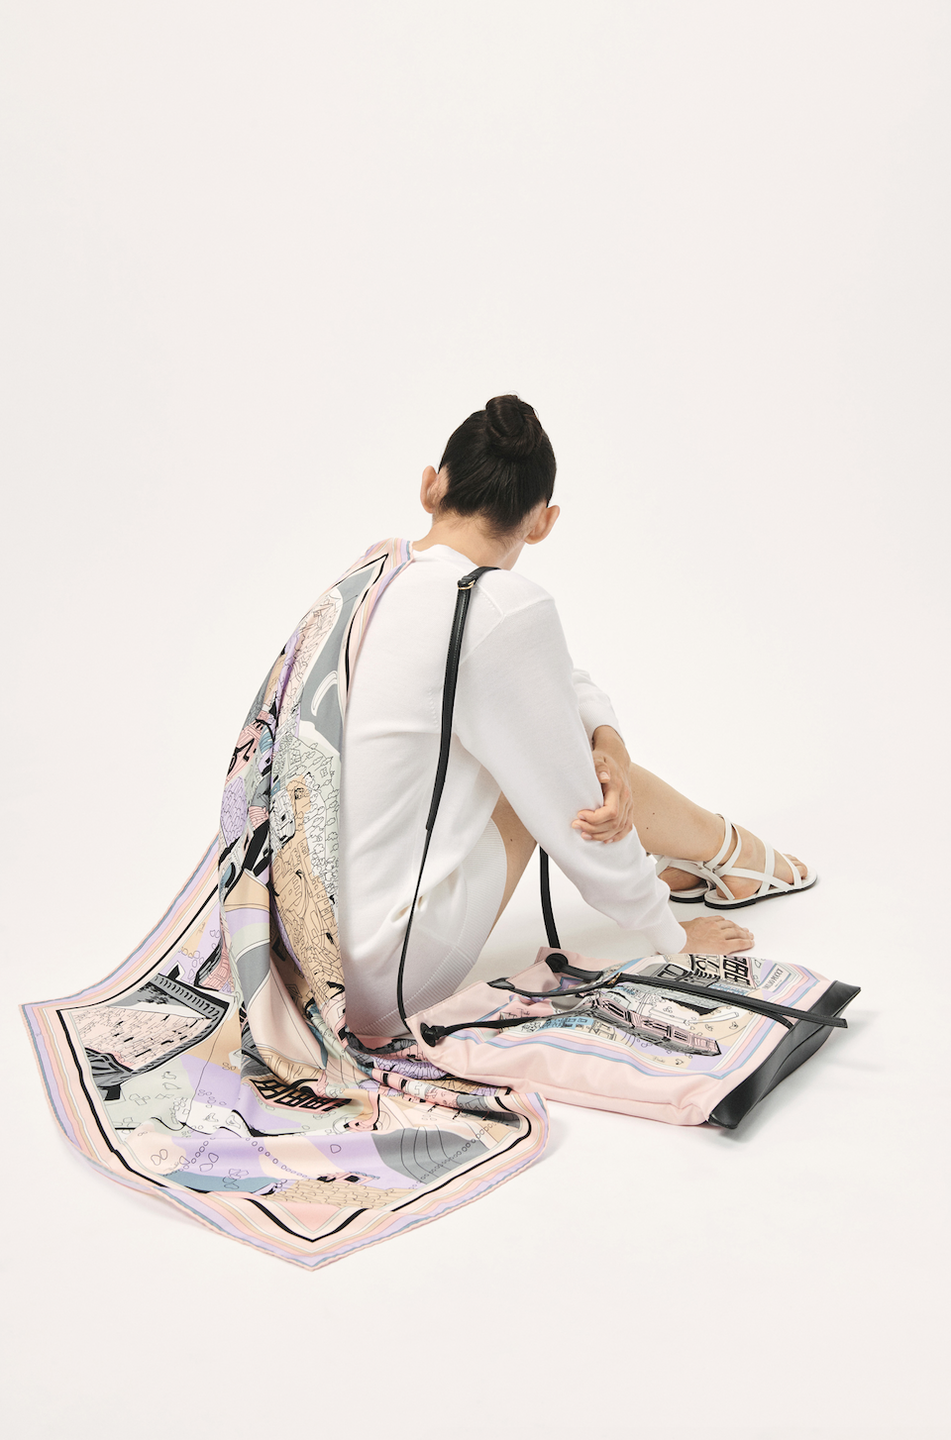 """<p>Emilio Pucci's resort 2021 collection was inspired by the 1950s and celebrates the iconic pieces of the fashion house such as the """"pyjama palazzo, kaftan, and scarves shirt."""" Look out for Pucci's archival scarf prints. Four of them—Battistero, Dinamica, Scorci Fiorentini, and Vetrate—""""constitute an ode to the city of Florence in all its magnificence."""" </p>"""